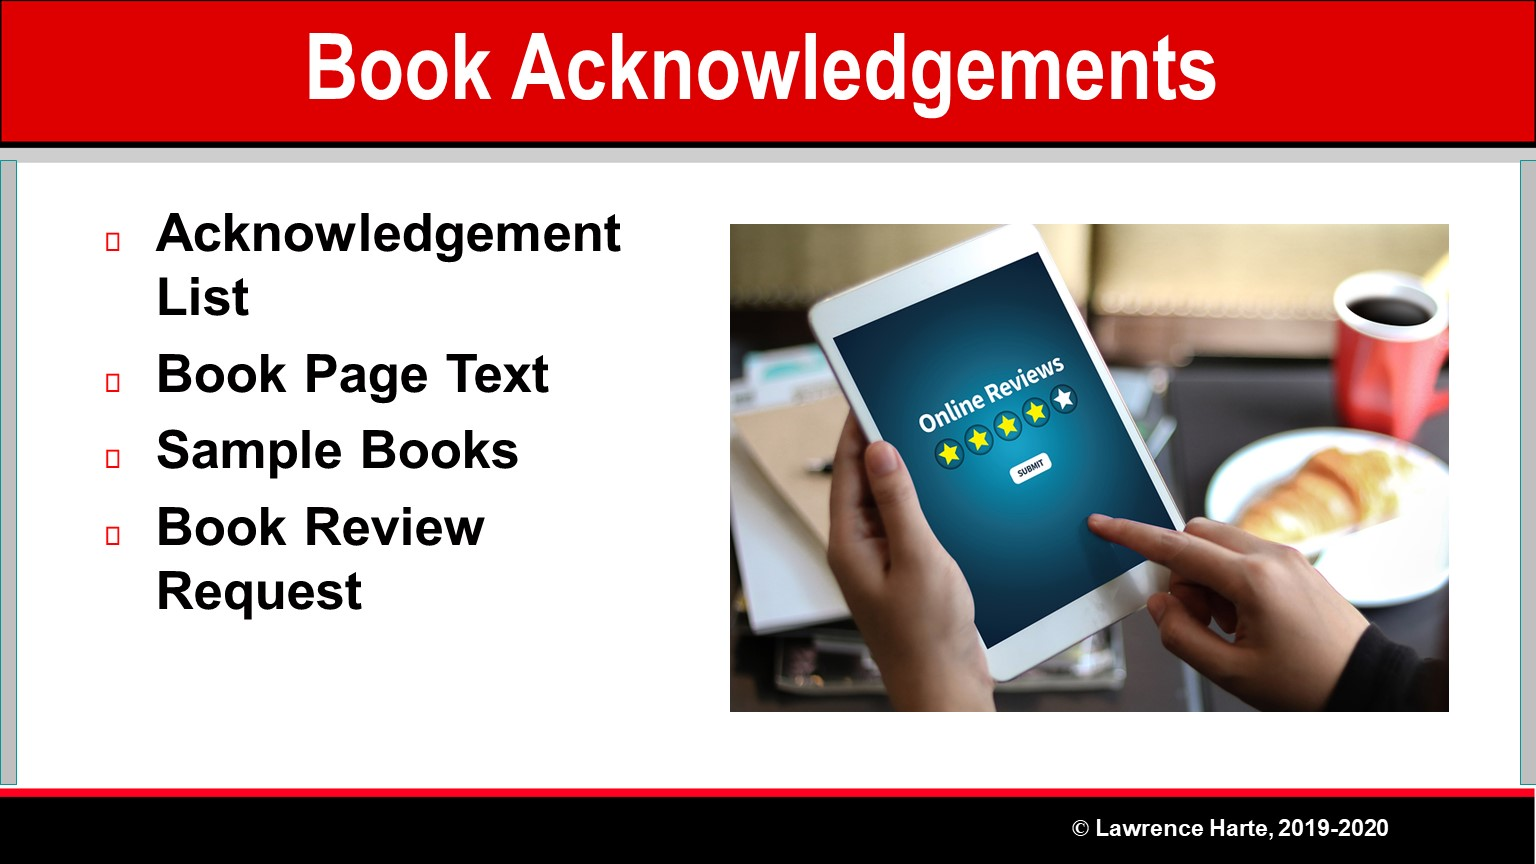 Book Pre-Launch Marketing Acknowledgements and Reviews